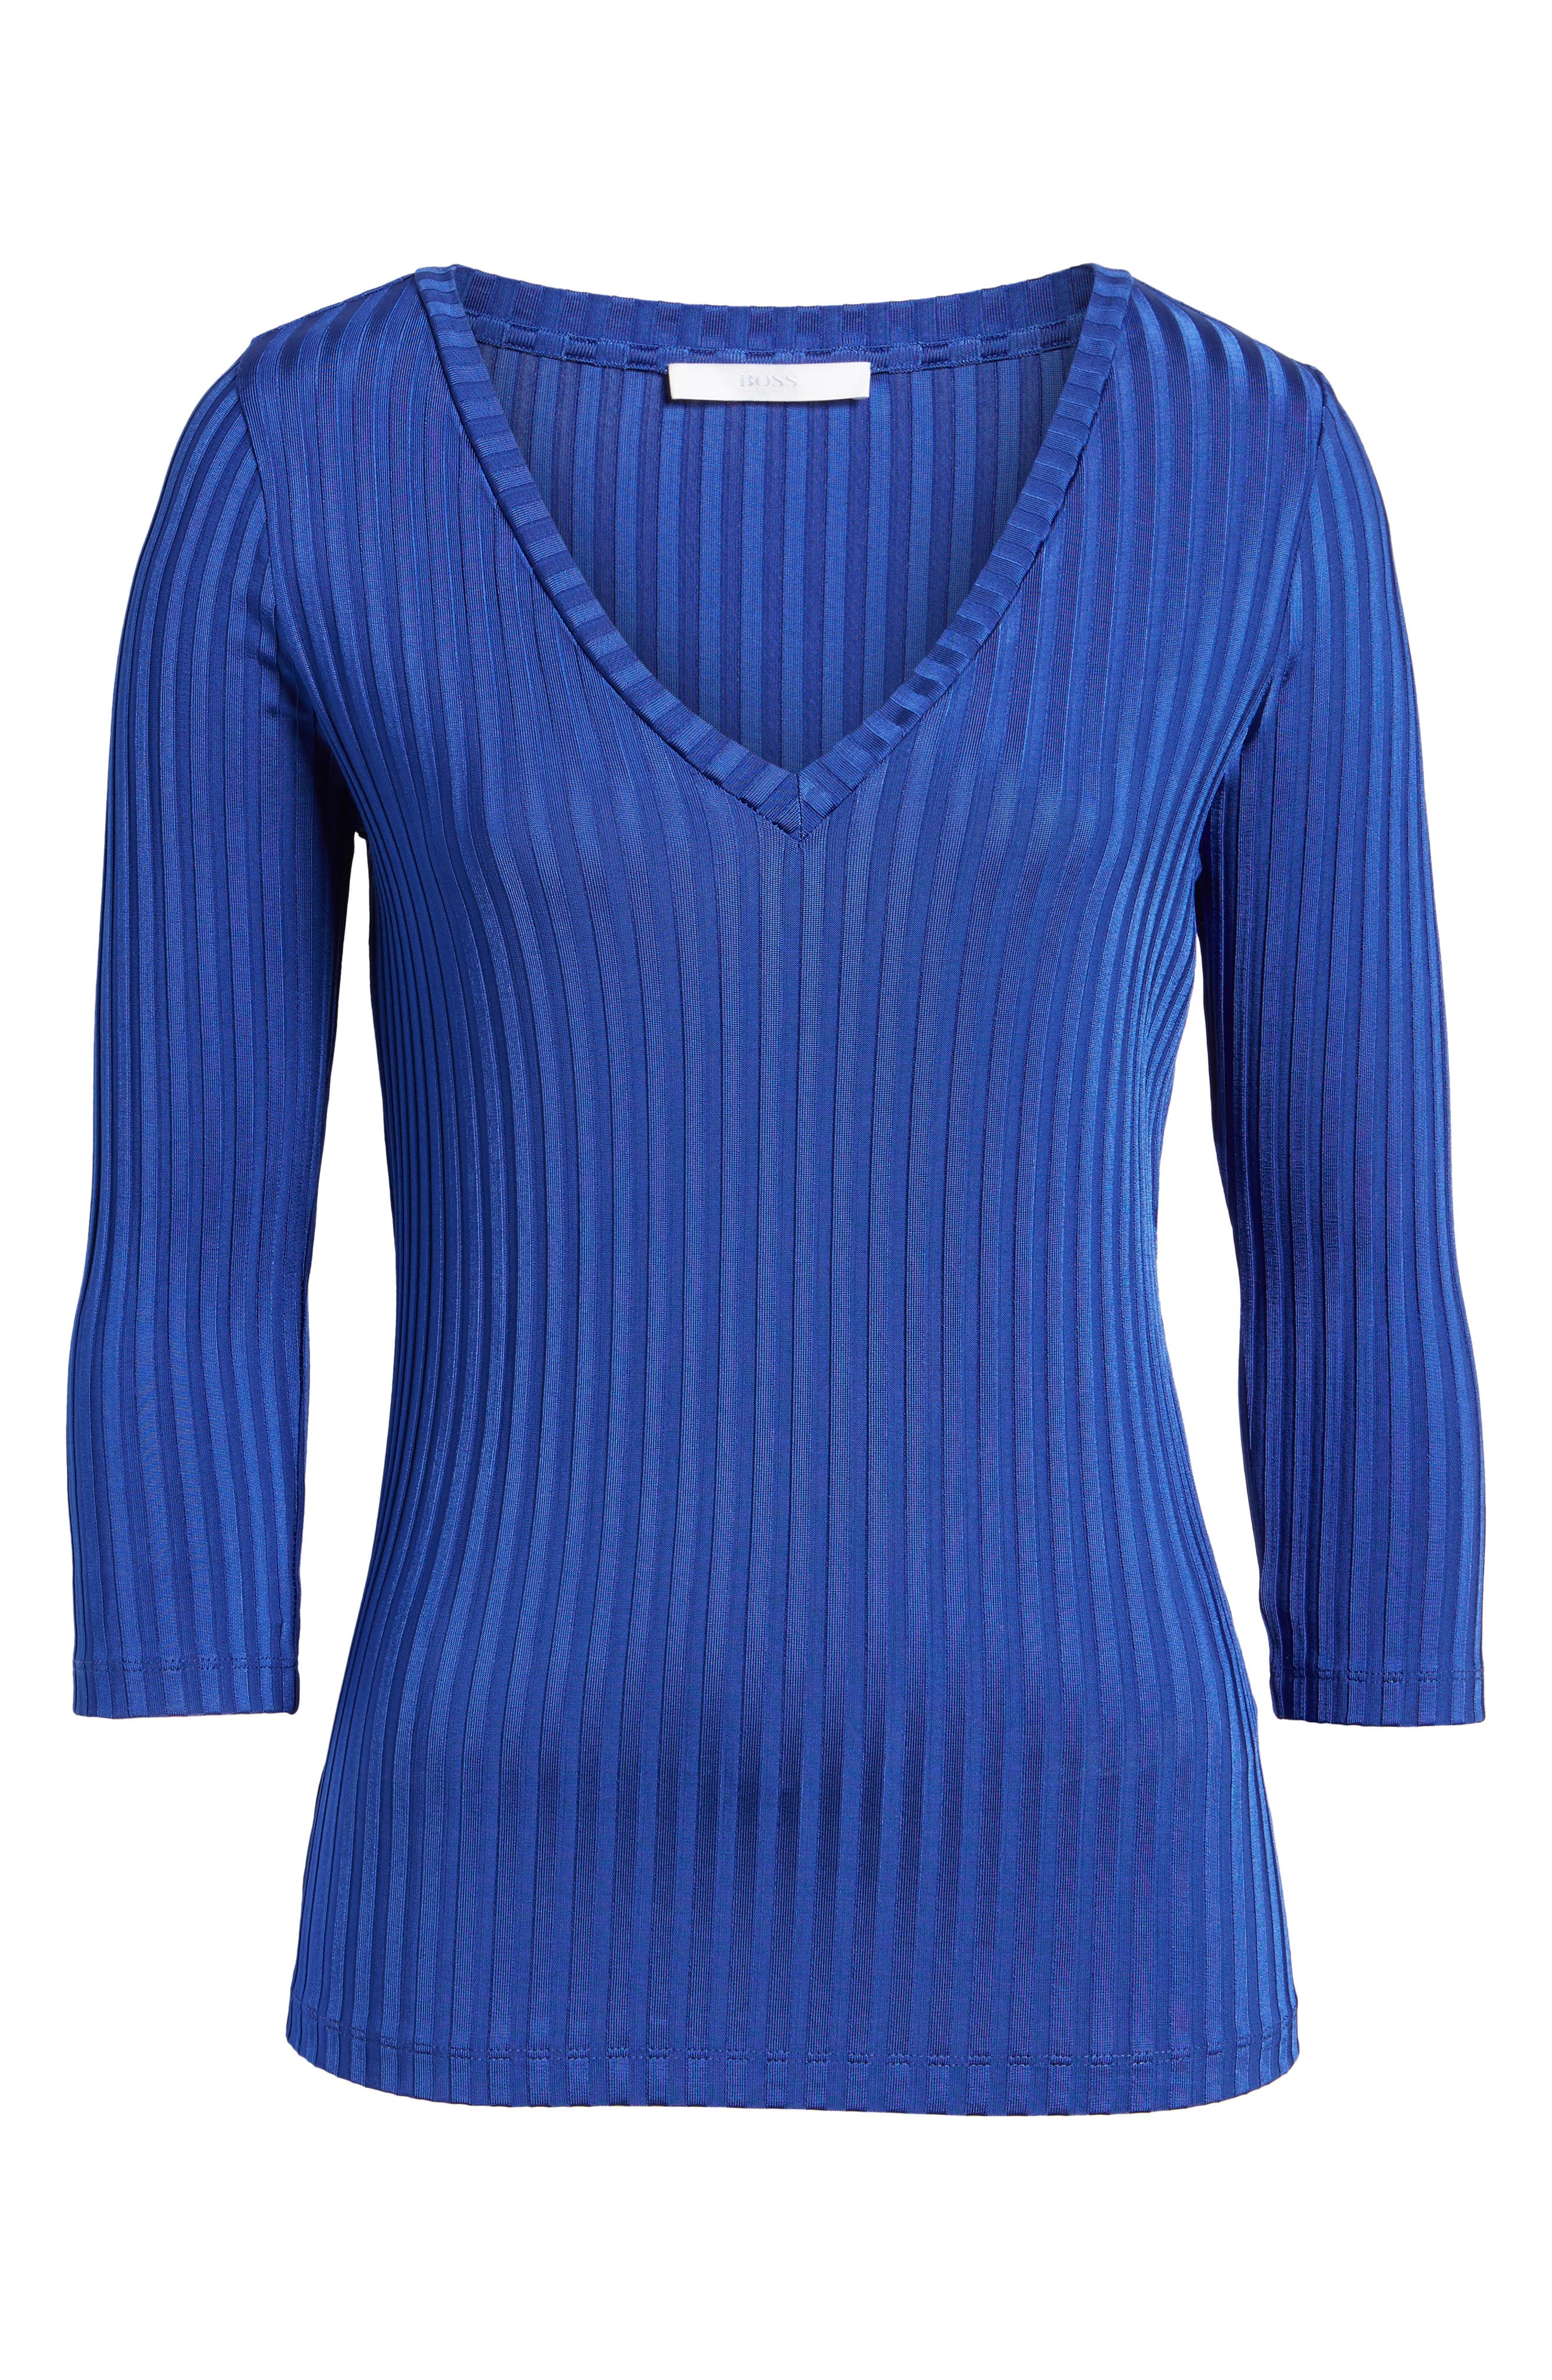 Etrica V-Neck Ribbed Top,                             Alternate thumbnail 6, color,                             Sailor Blue